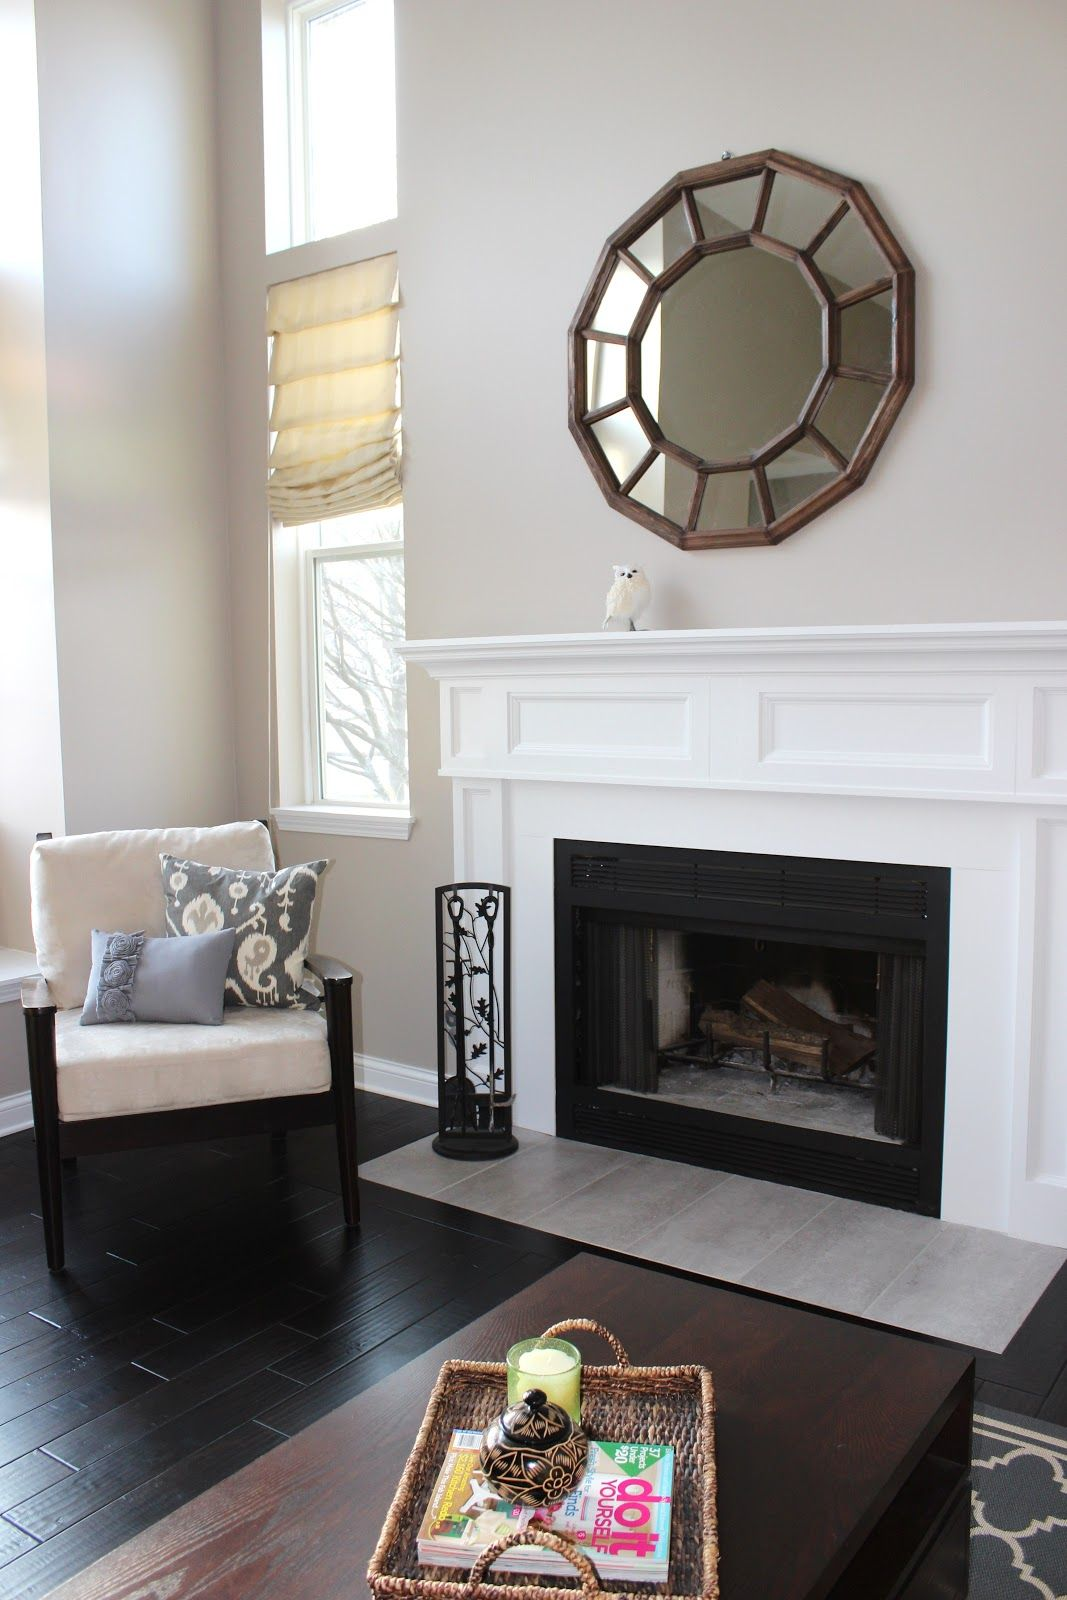 fireplace decorating ideas | Mirror, Mirror on the Wall: 8 Fireplace ...